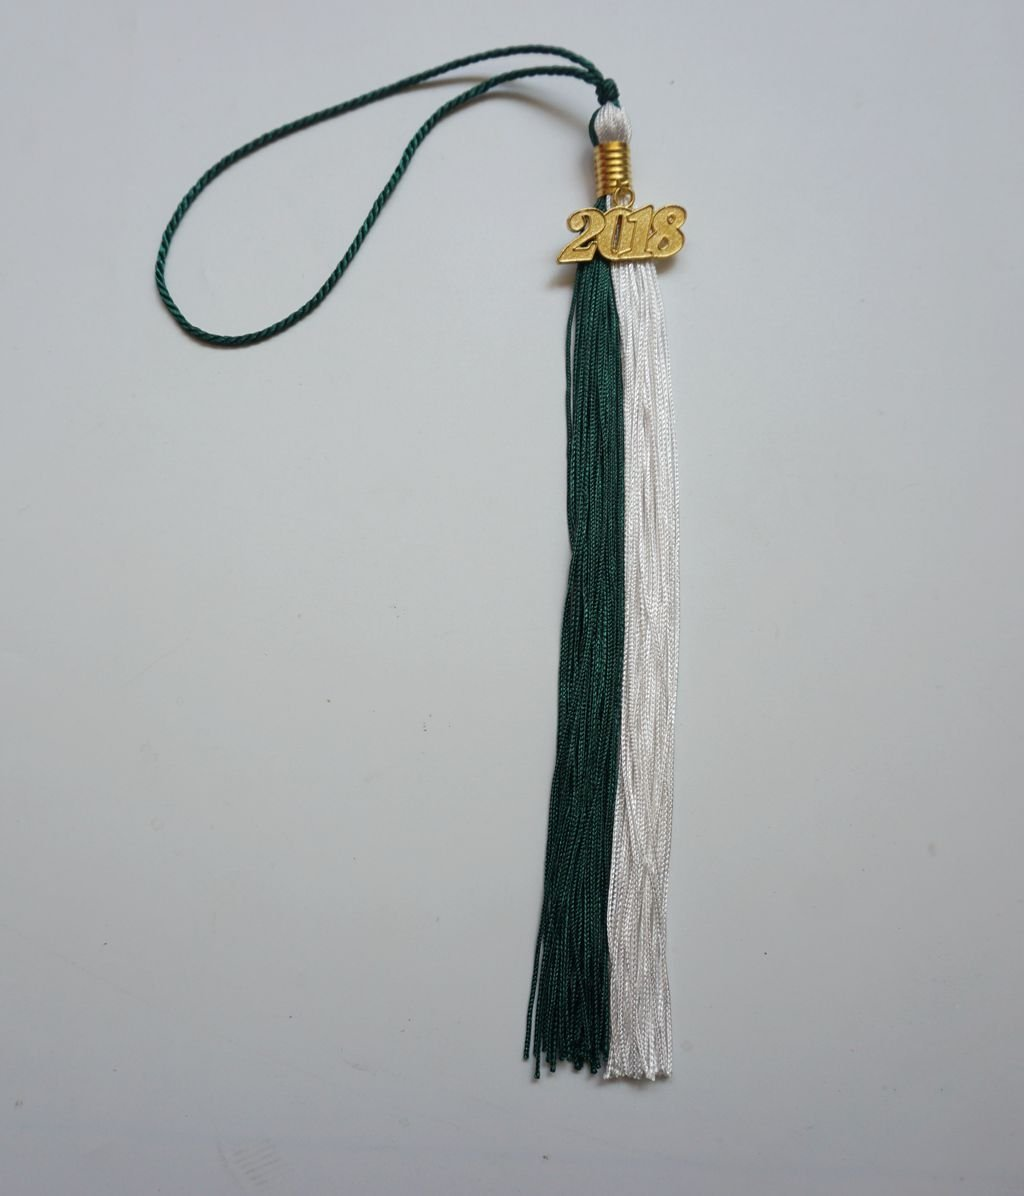 Graduation Tassel Two-Colored with 2018 Gold Year Charm Grad Day White//Green